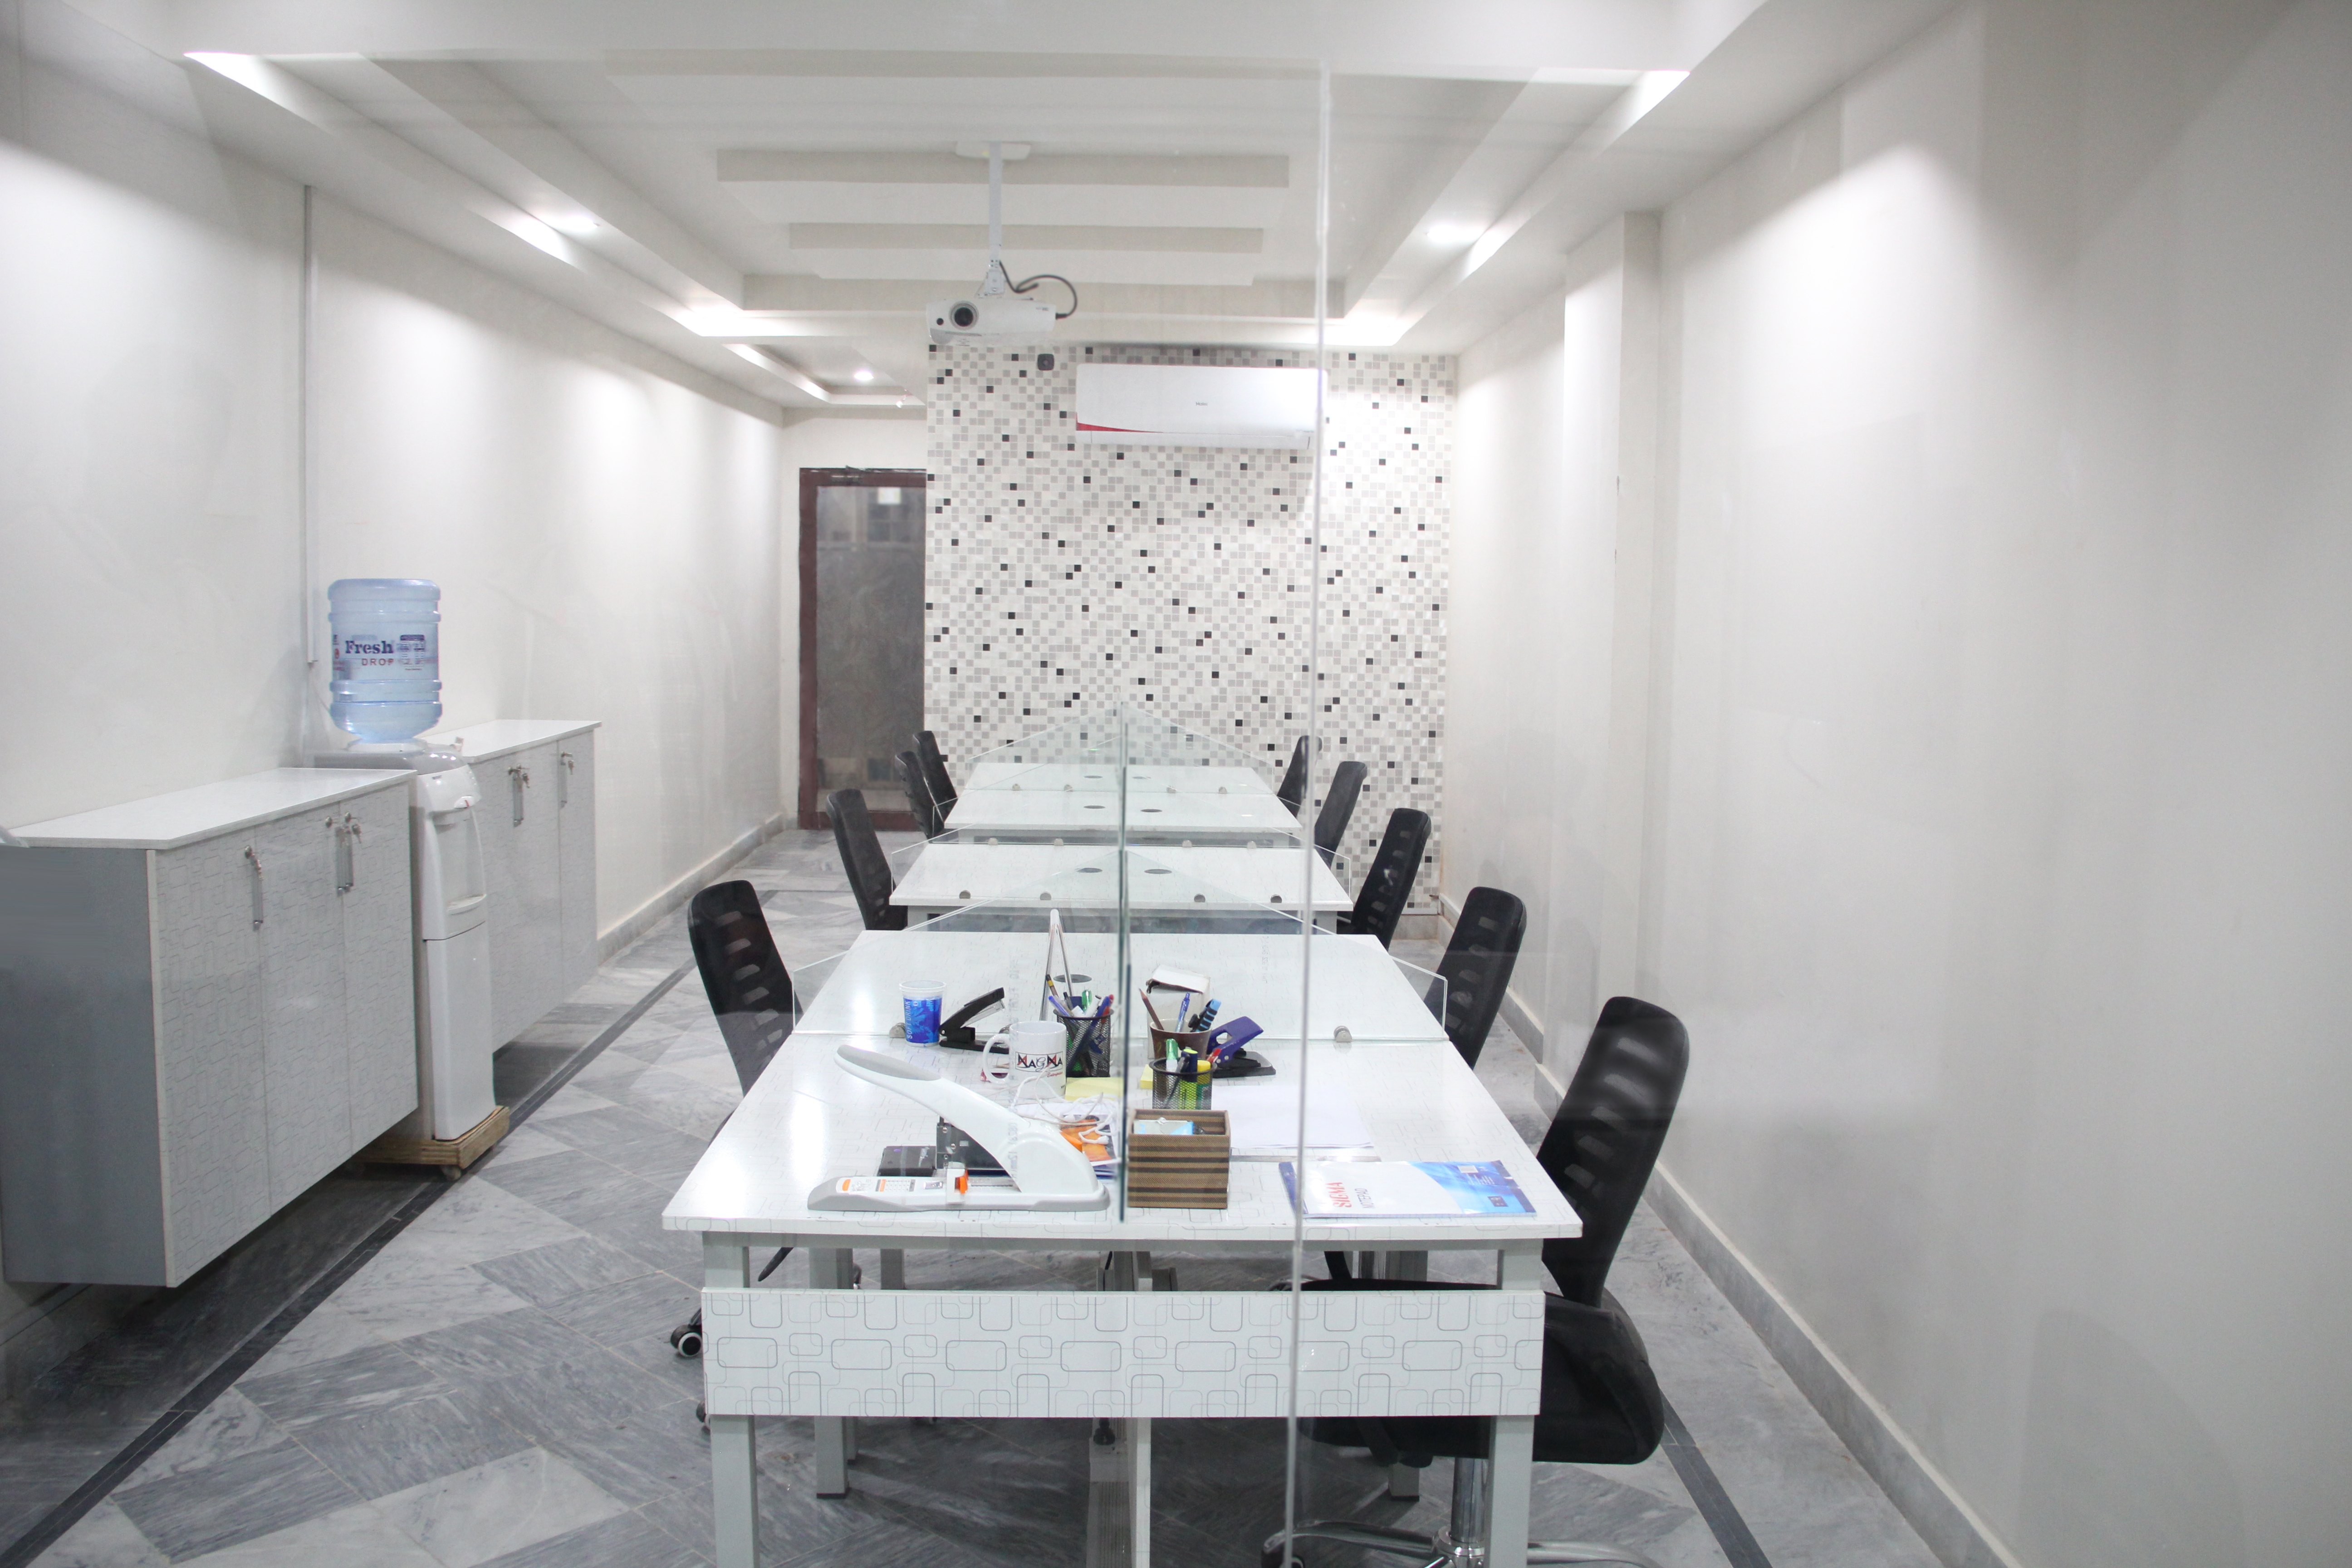 bestcoworkingspaceislamabad, bestcoworkingspacei8, Shared WorkSpace, ideal shared workspace